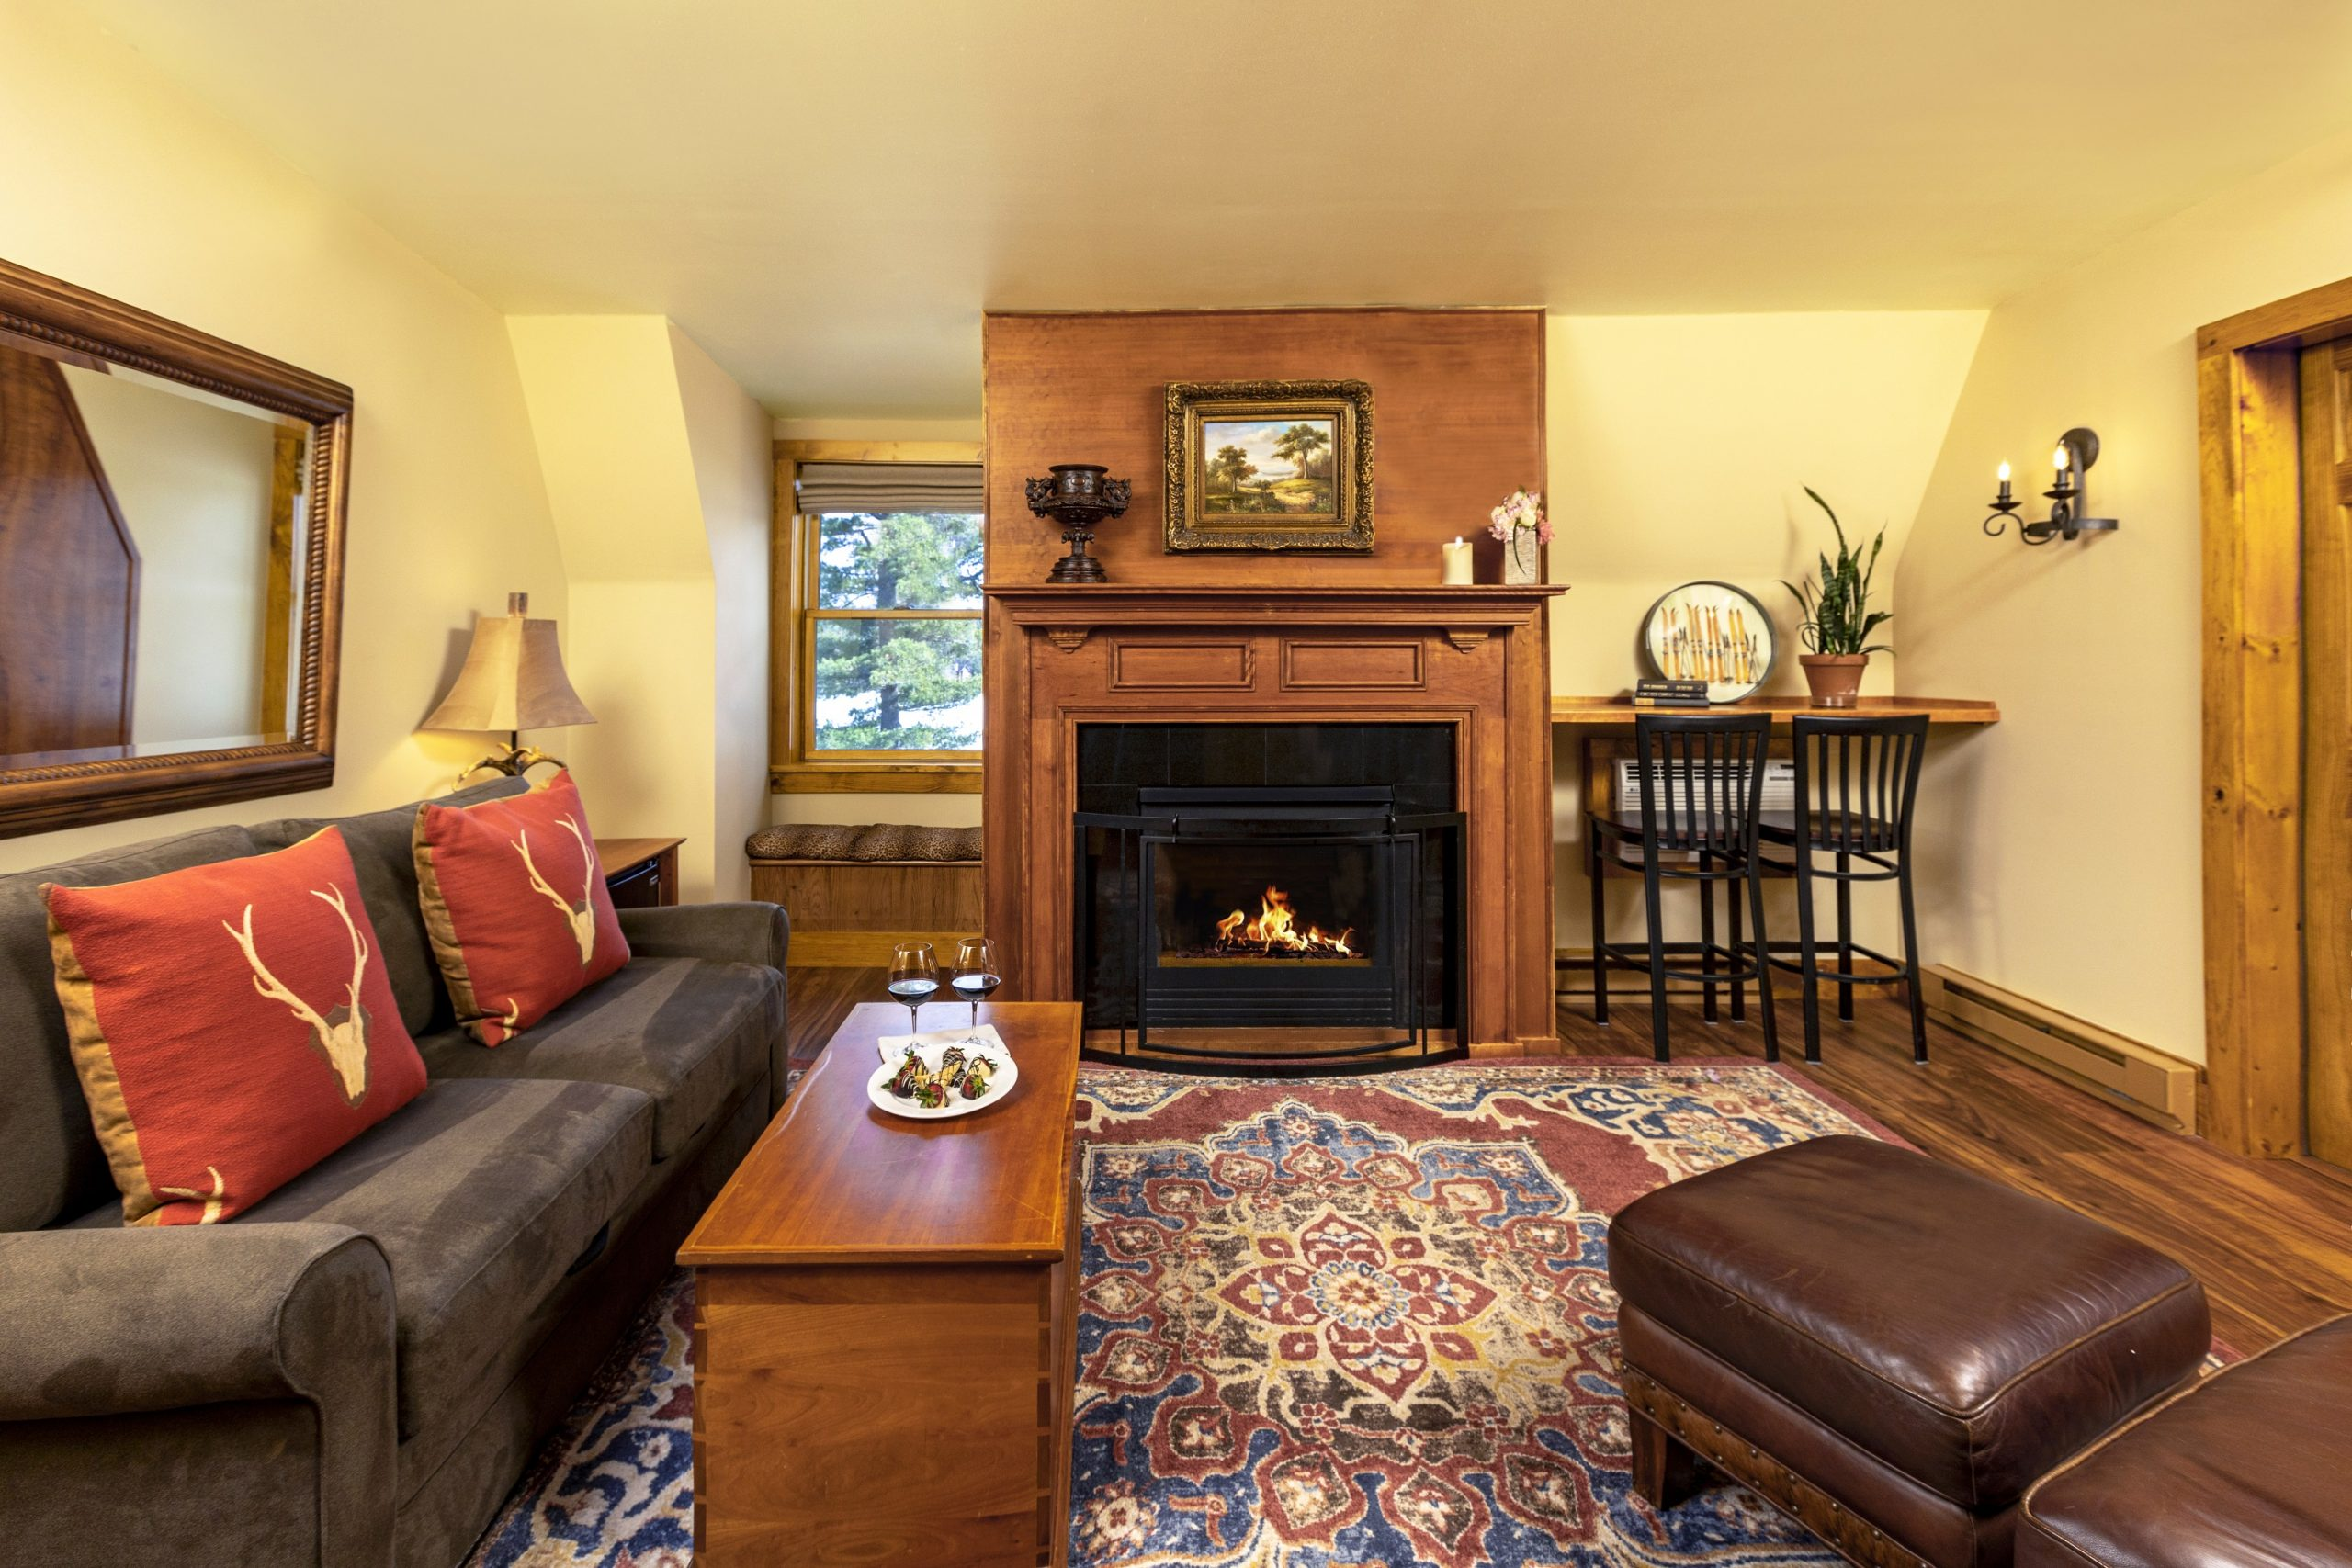 A cozy lit fireplace in the middle of a wall adjacent to a large couch and coffee table